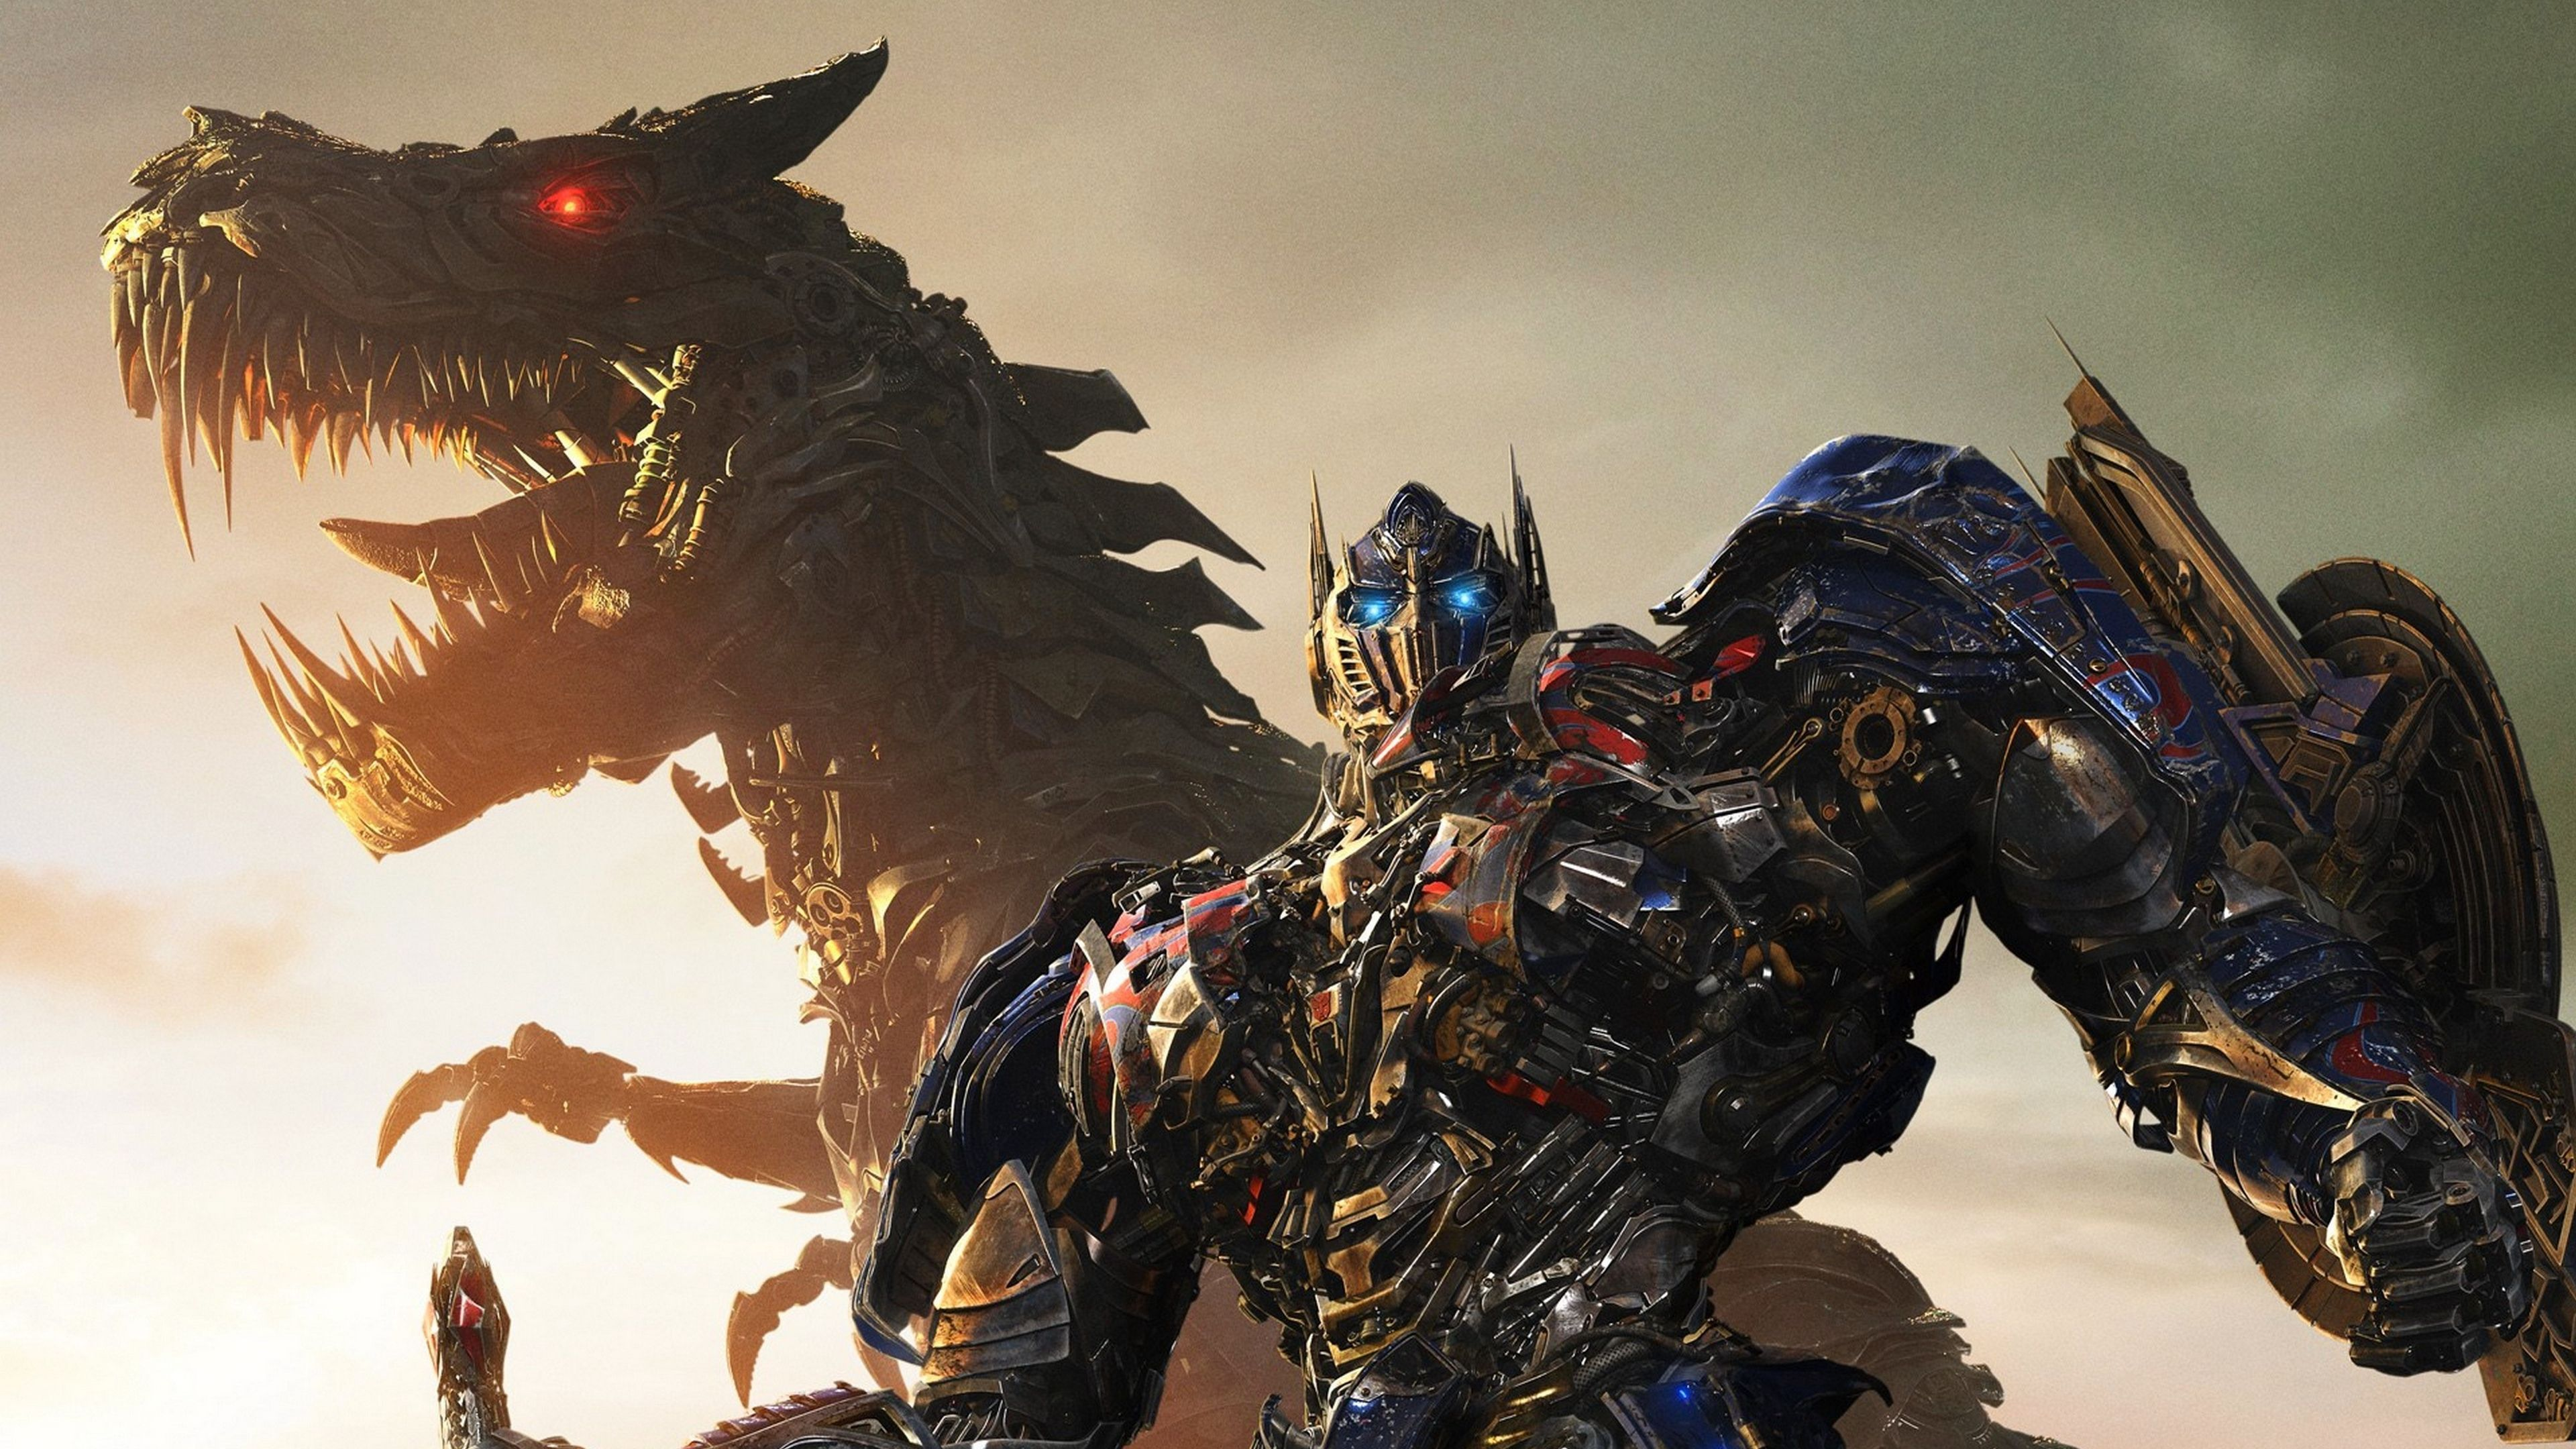 3840x2160 Download Wallpaper 3840x2160 Transformers Age Of